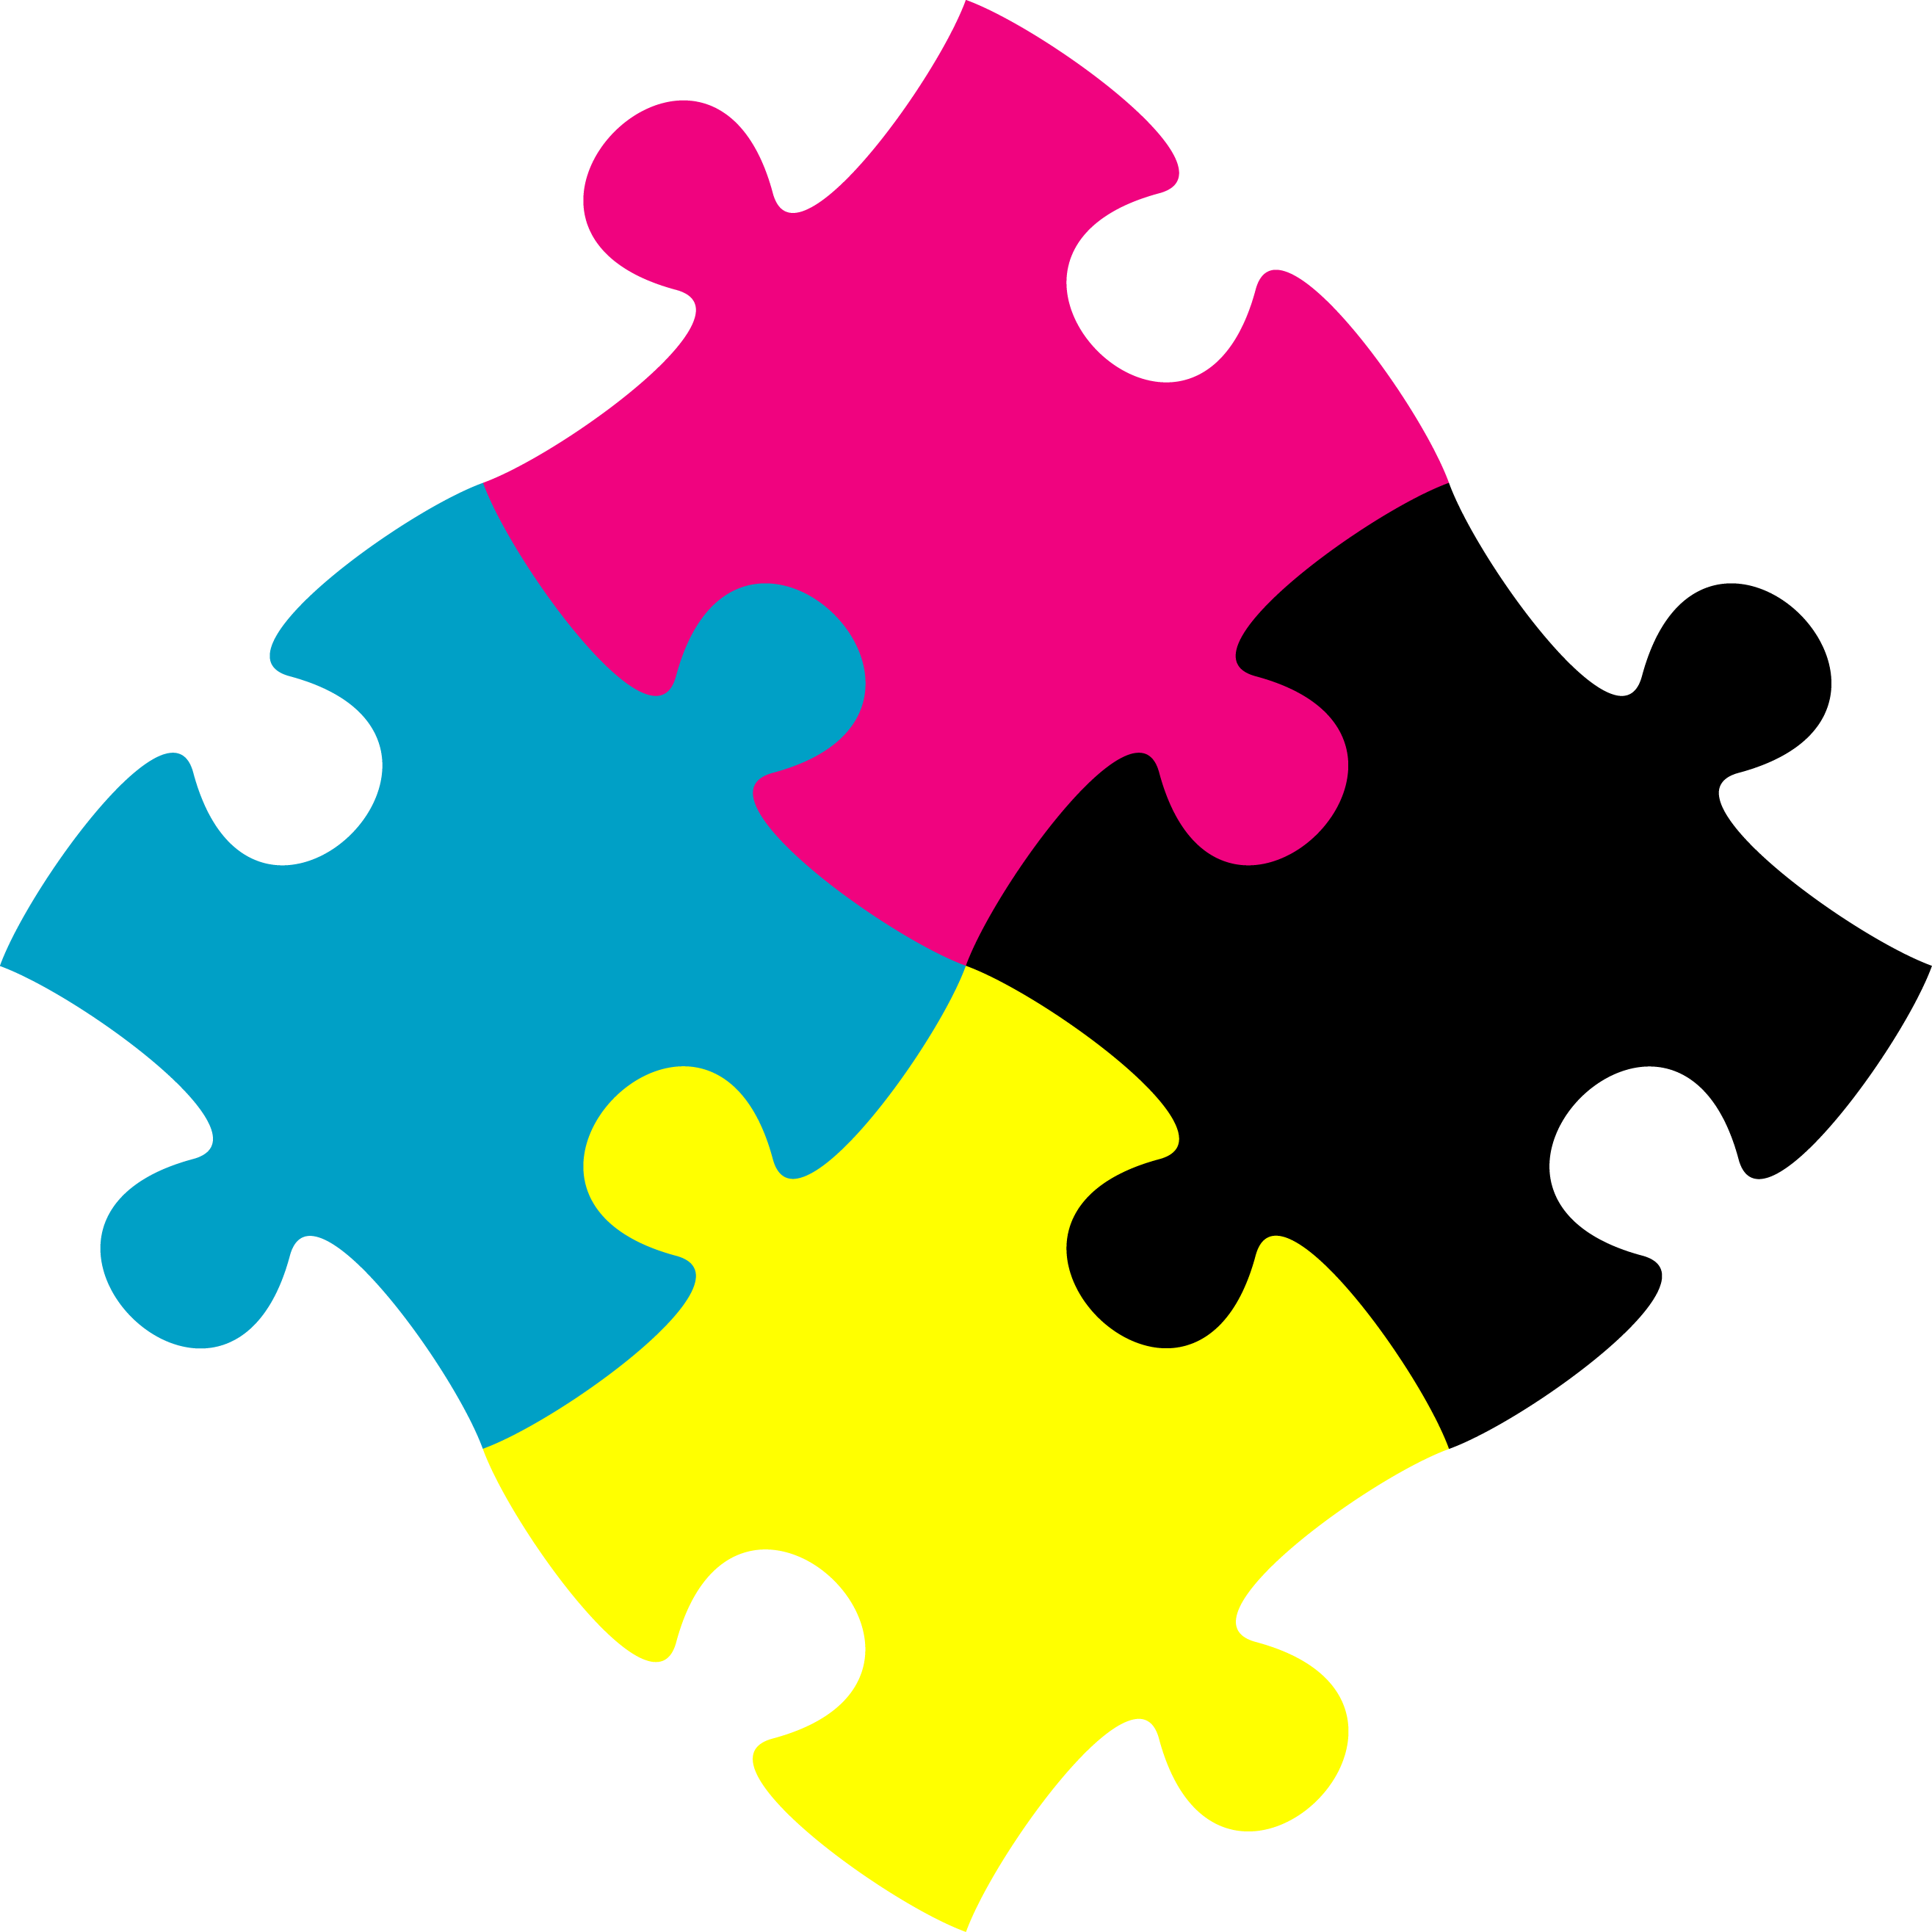 Jigsaw Puzzle Free PNG Image - PNG Jigsaw Puzzle